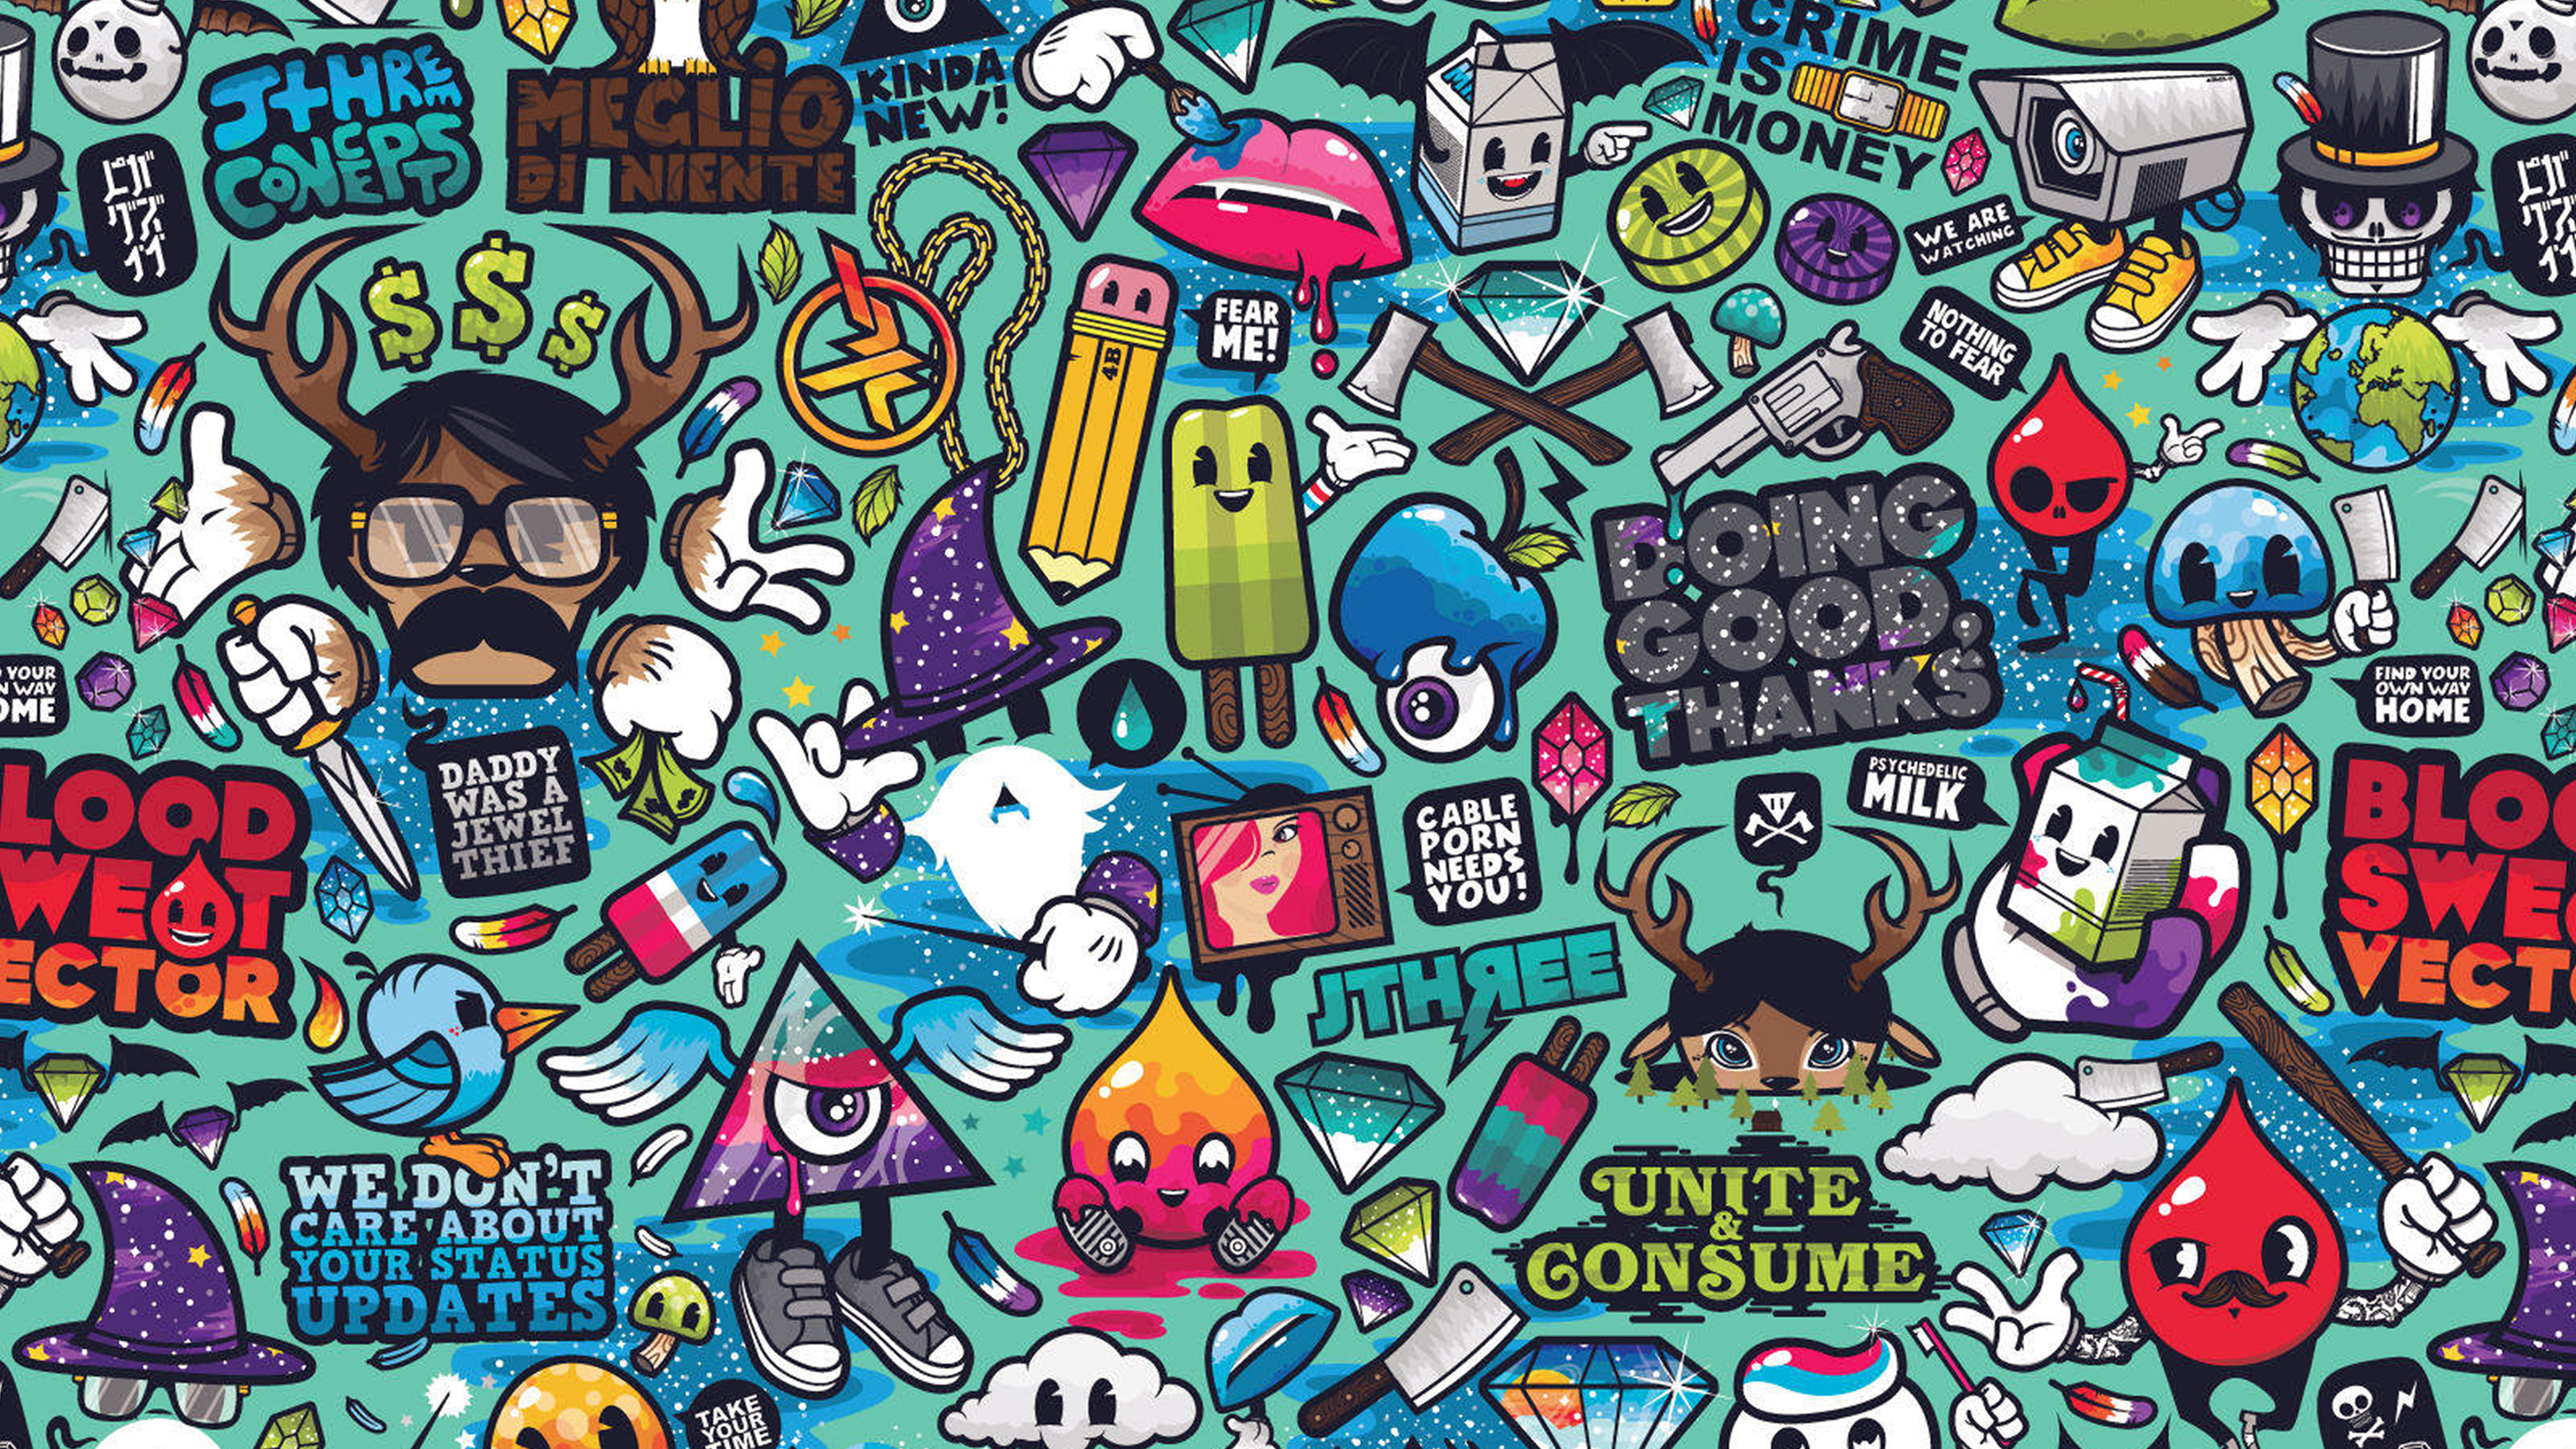 Gravity Falls Wallpaper Celular Hd Aq61 Art Work Pattern Illustration Graffiti Wallpaper